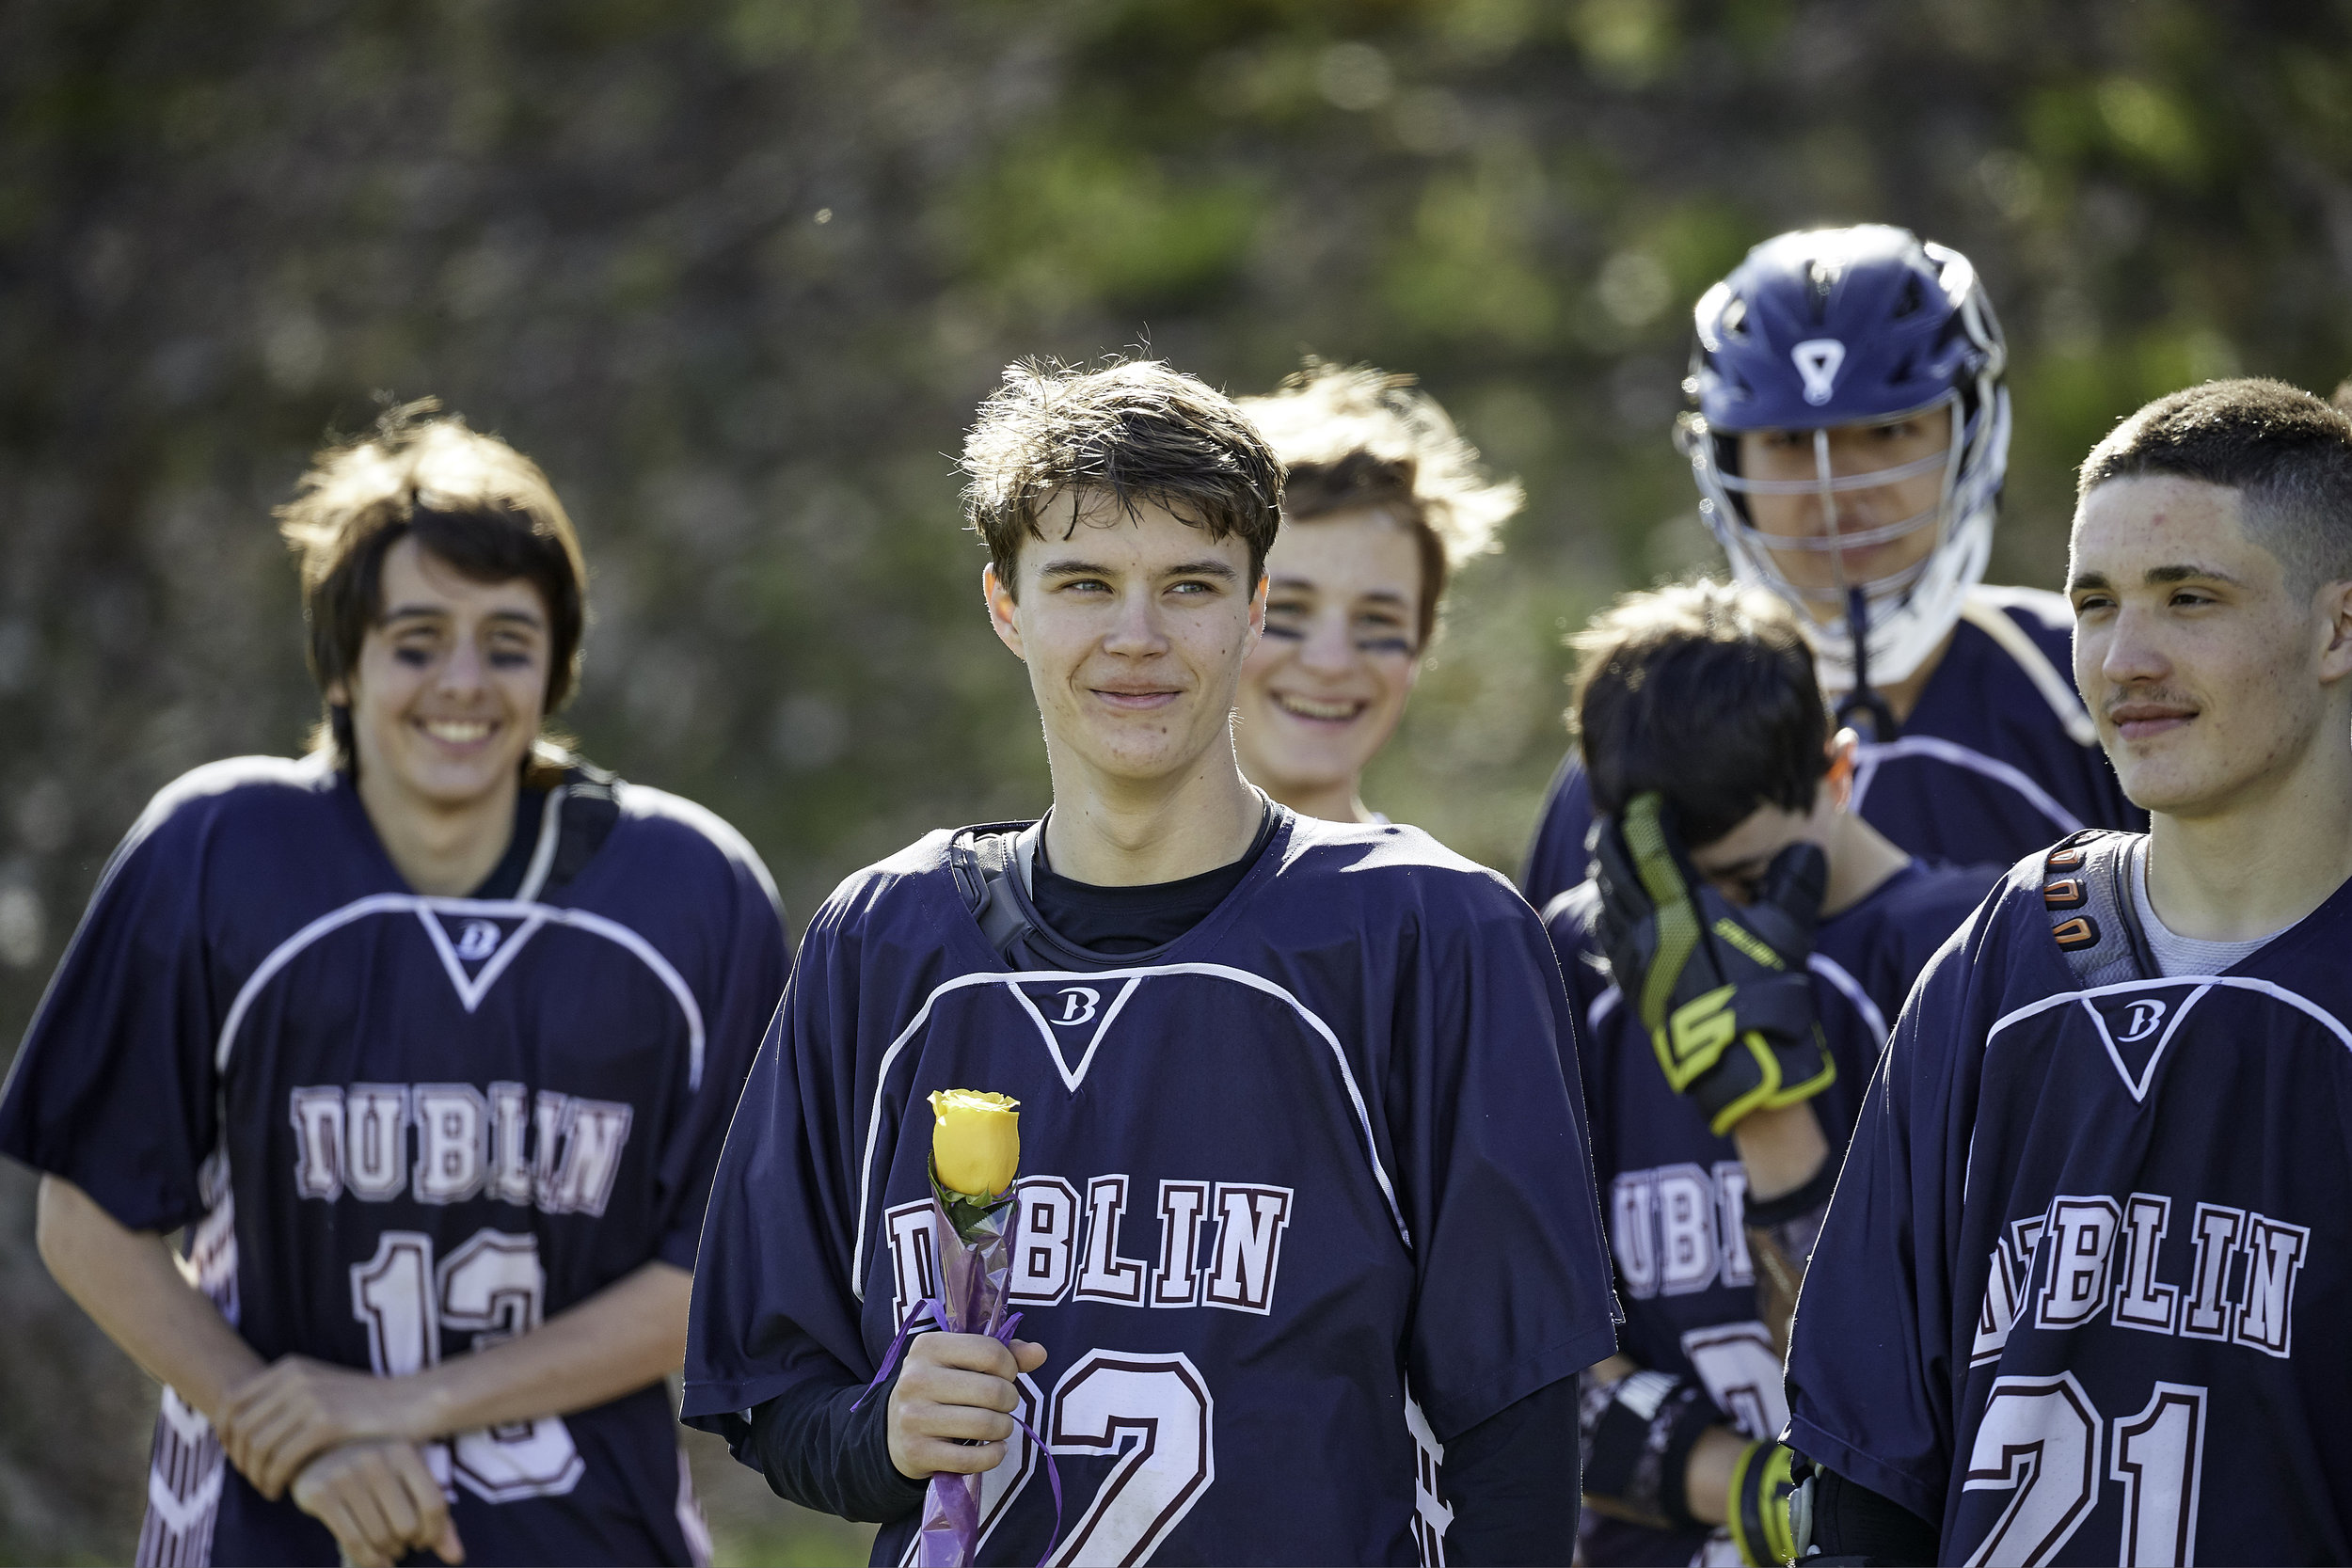 Boys Lax vs Northfield Mount Hermon JV - May 15 2019 - 0082.jpg